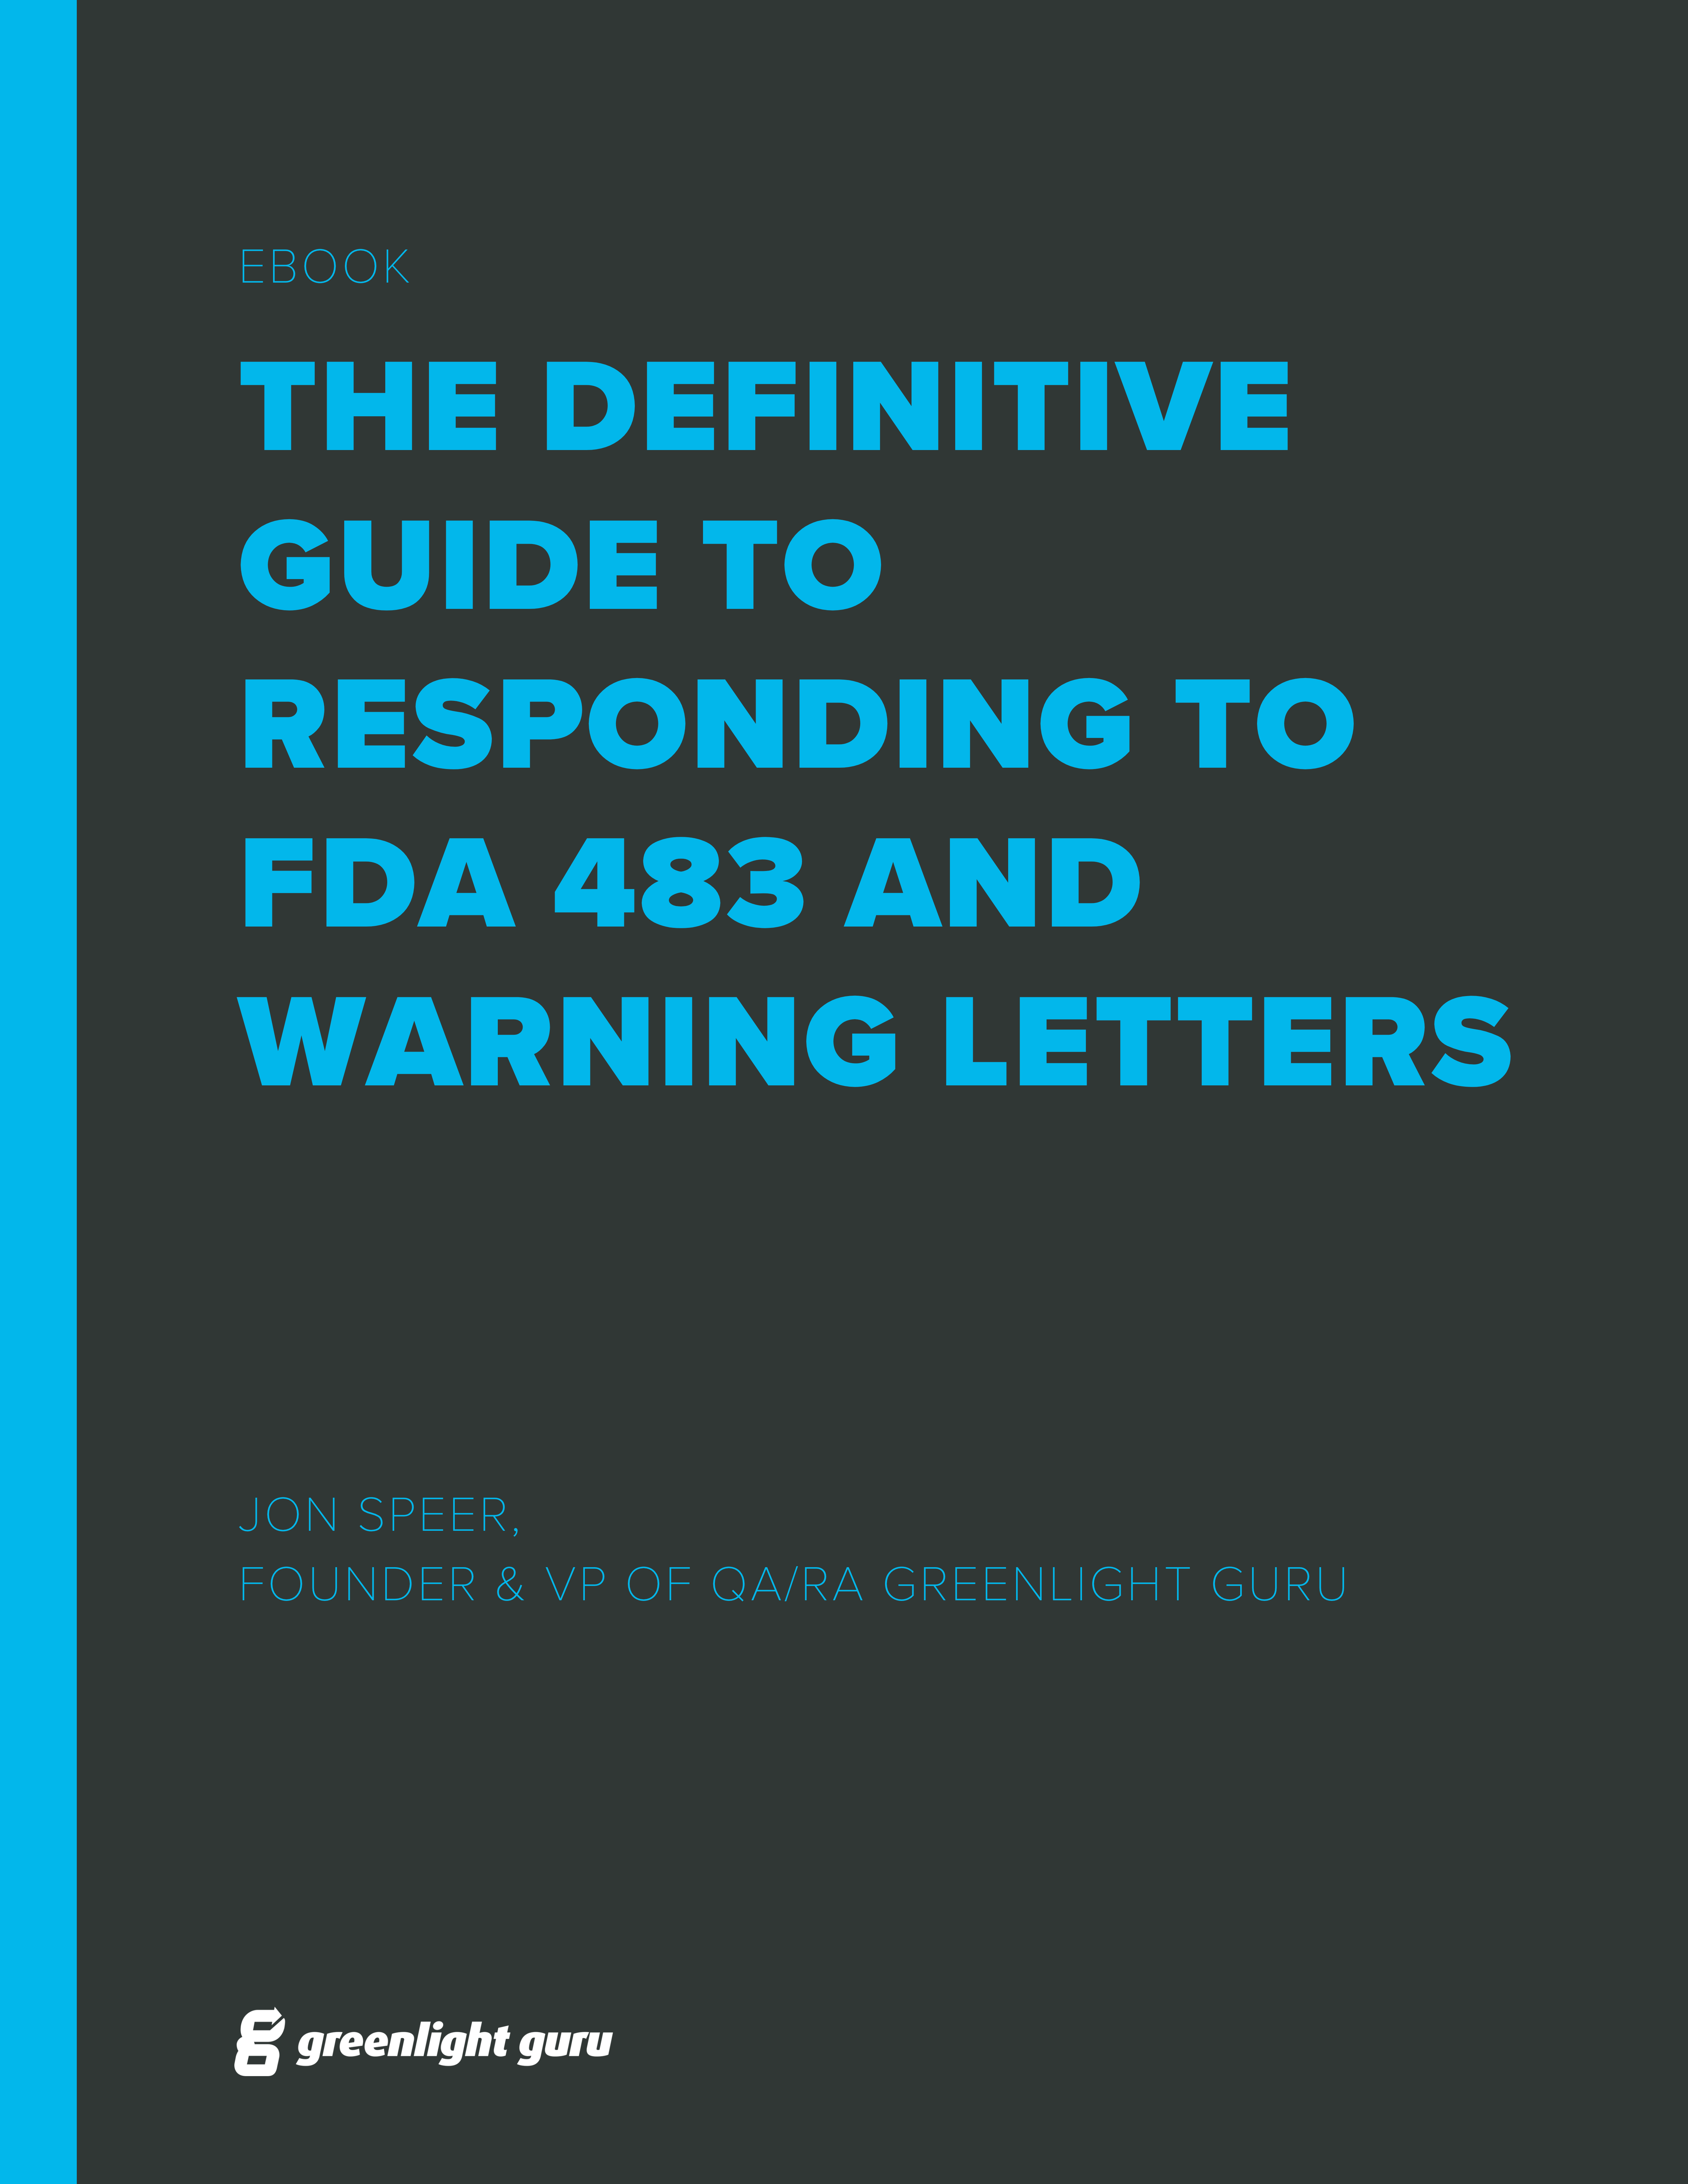 definitive guide to responding to FDA 483s & Warning Letters